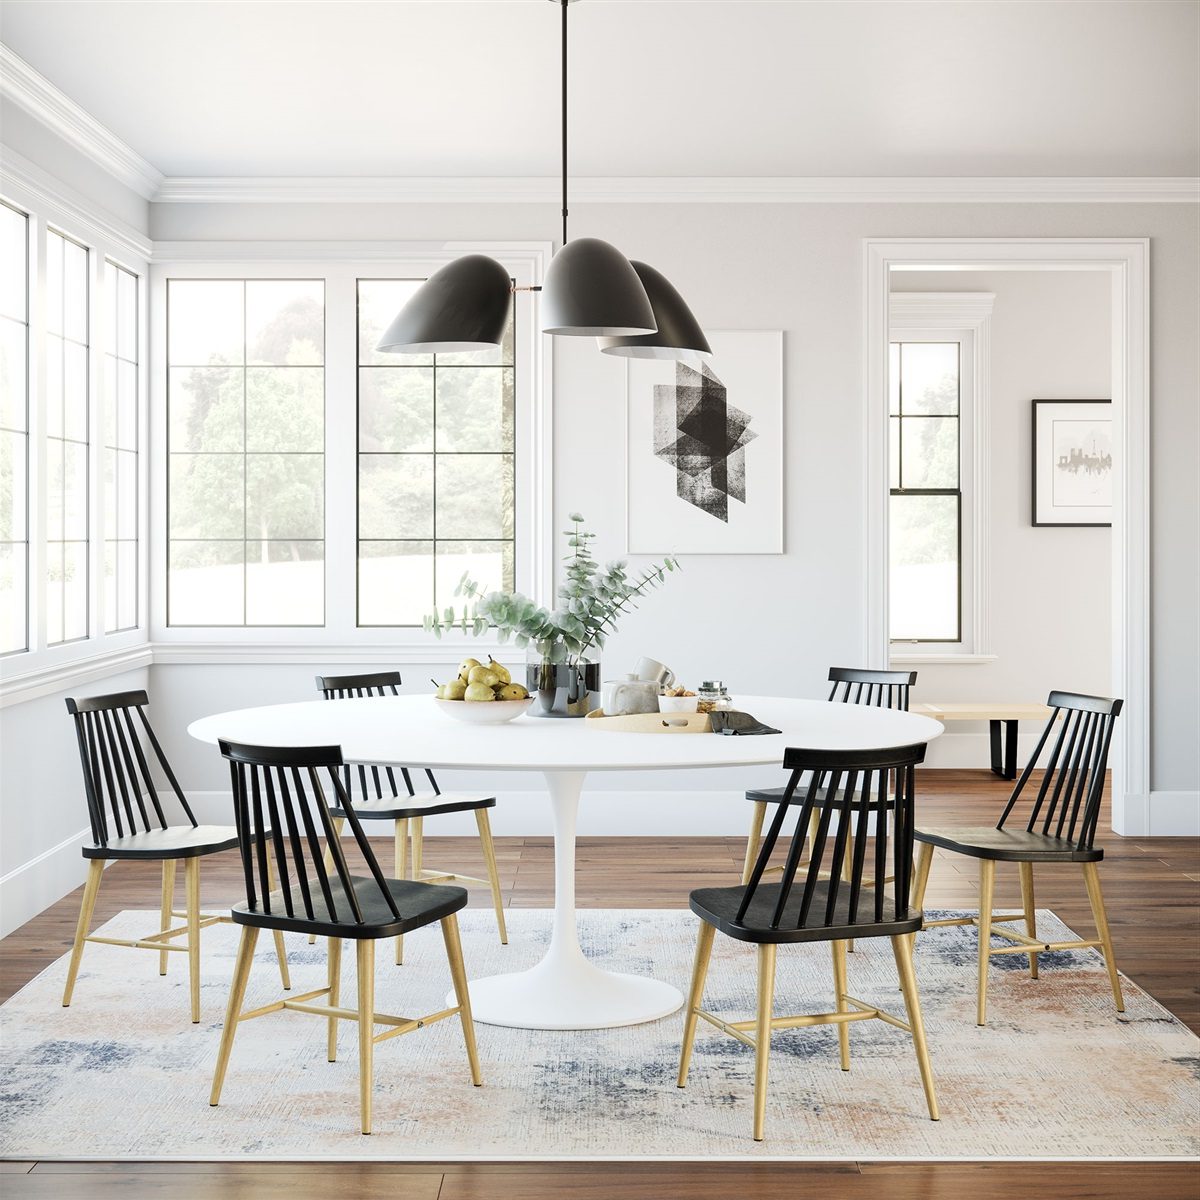 Fashionable Saarinen Tulip Oval Dining Table Throughout Cincinnati 3 Piece Dining Sets (Gallery 14 of 20)